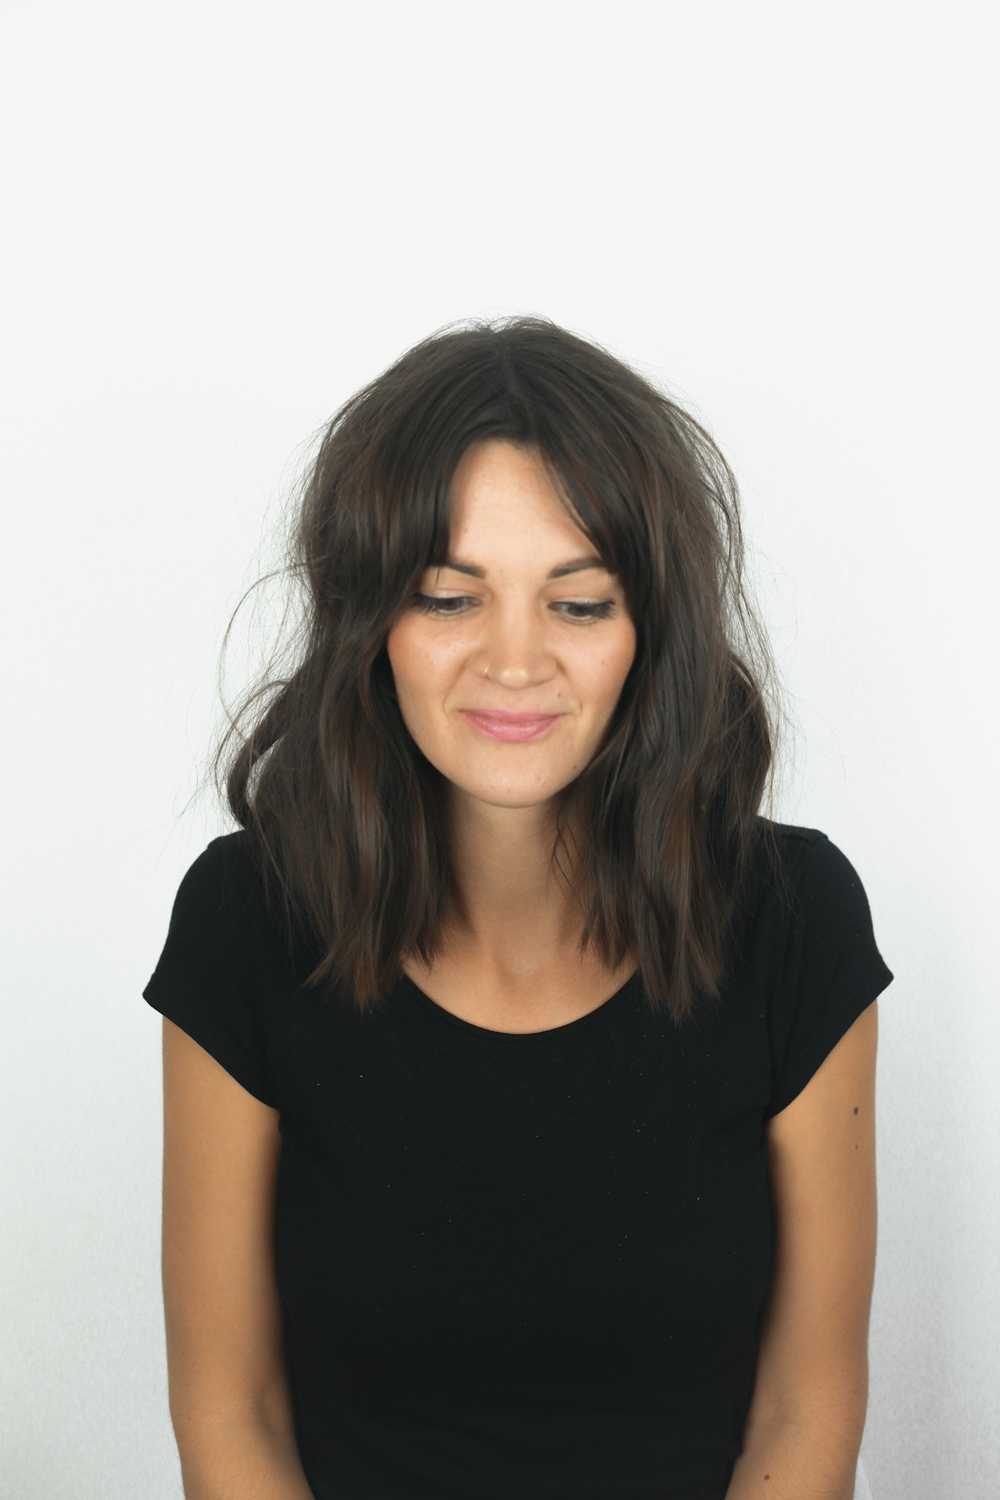 Hair Tutorial How To Get Natural Looking Curls For Short Hair